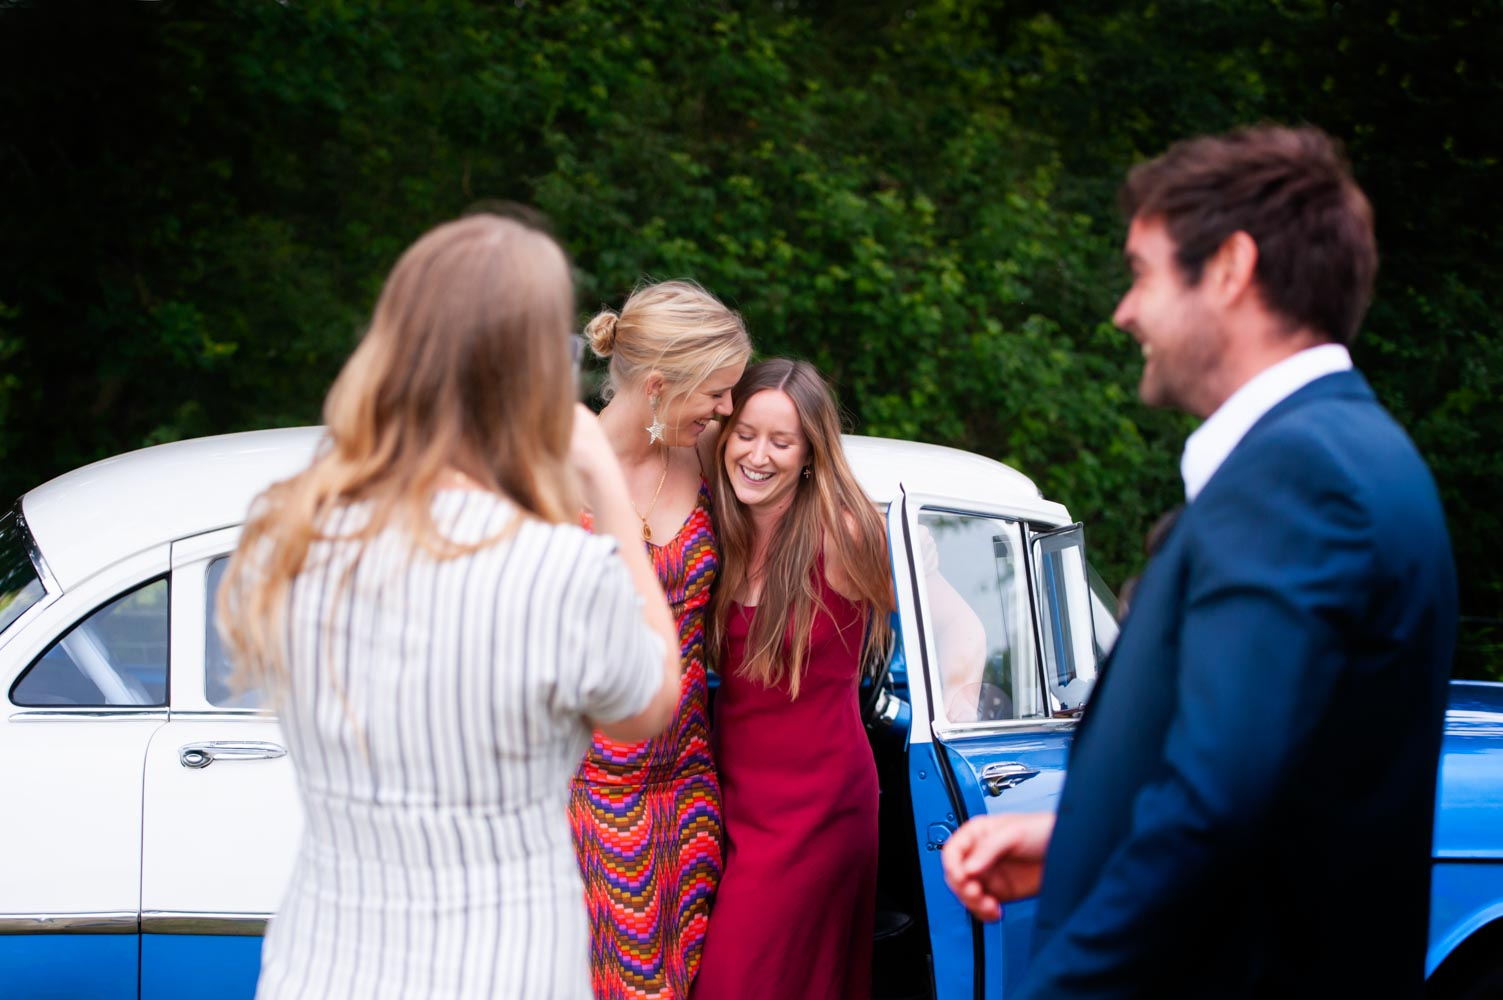 Wedding guests posing with a car for pictures